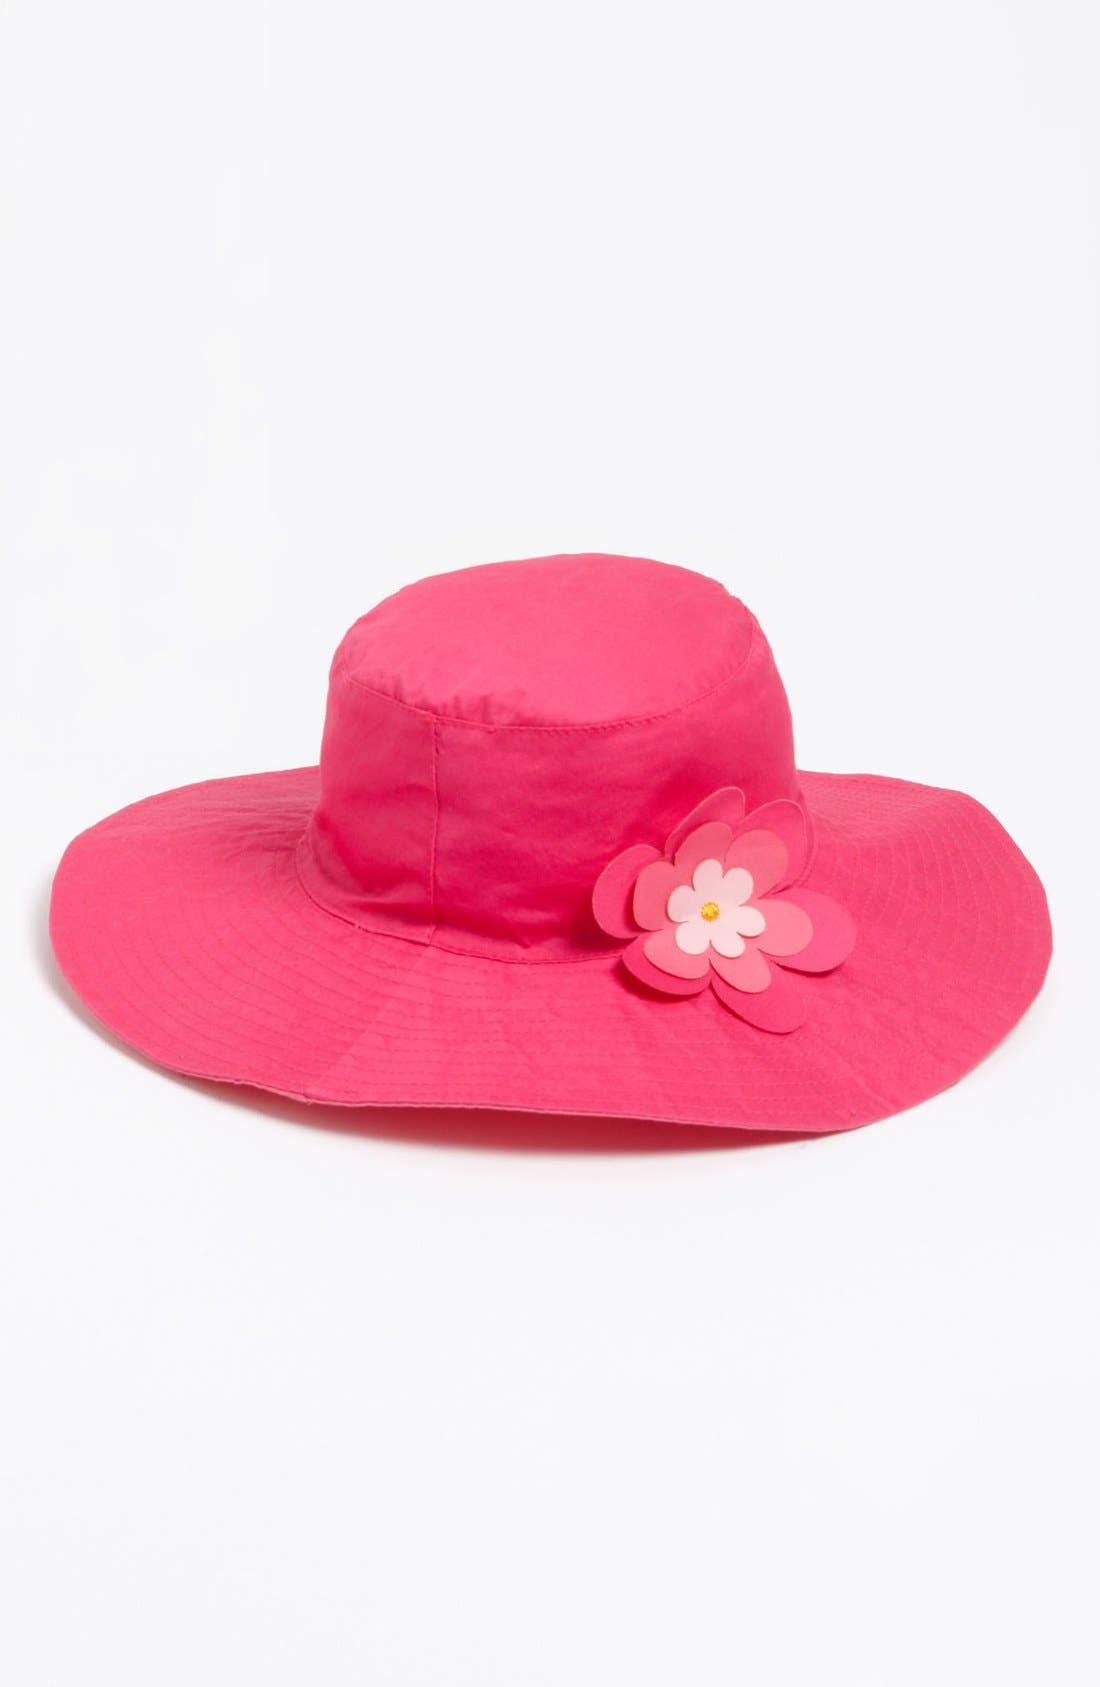 Alternate Image 1 Selected - Nolan Glove Sunhat (Toddler)